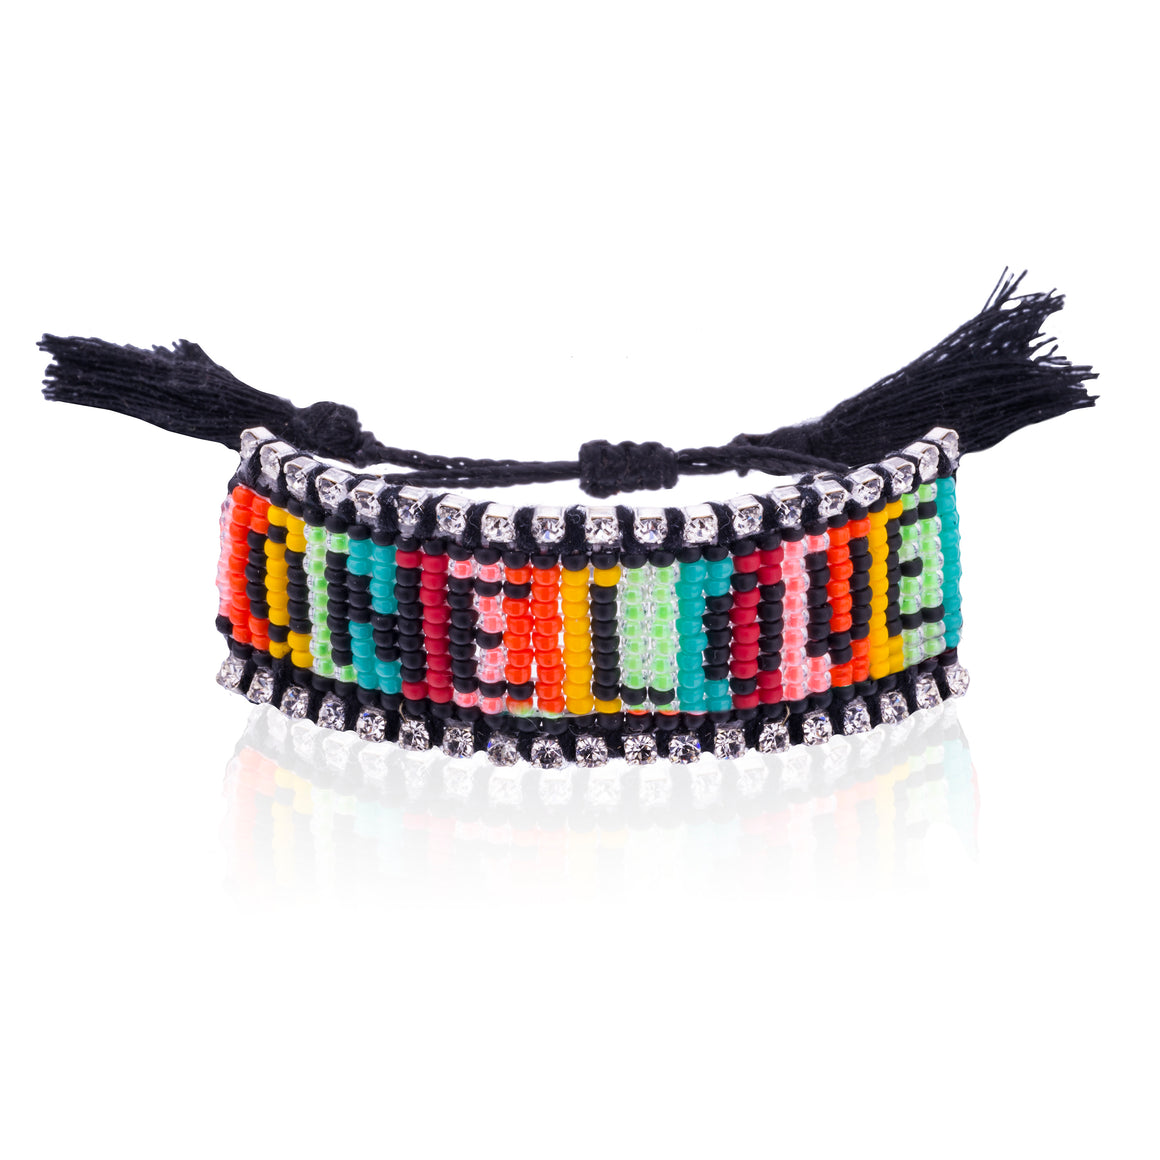 One Love Bling Bracelet